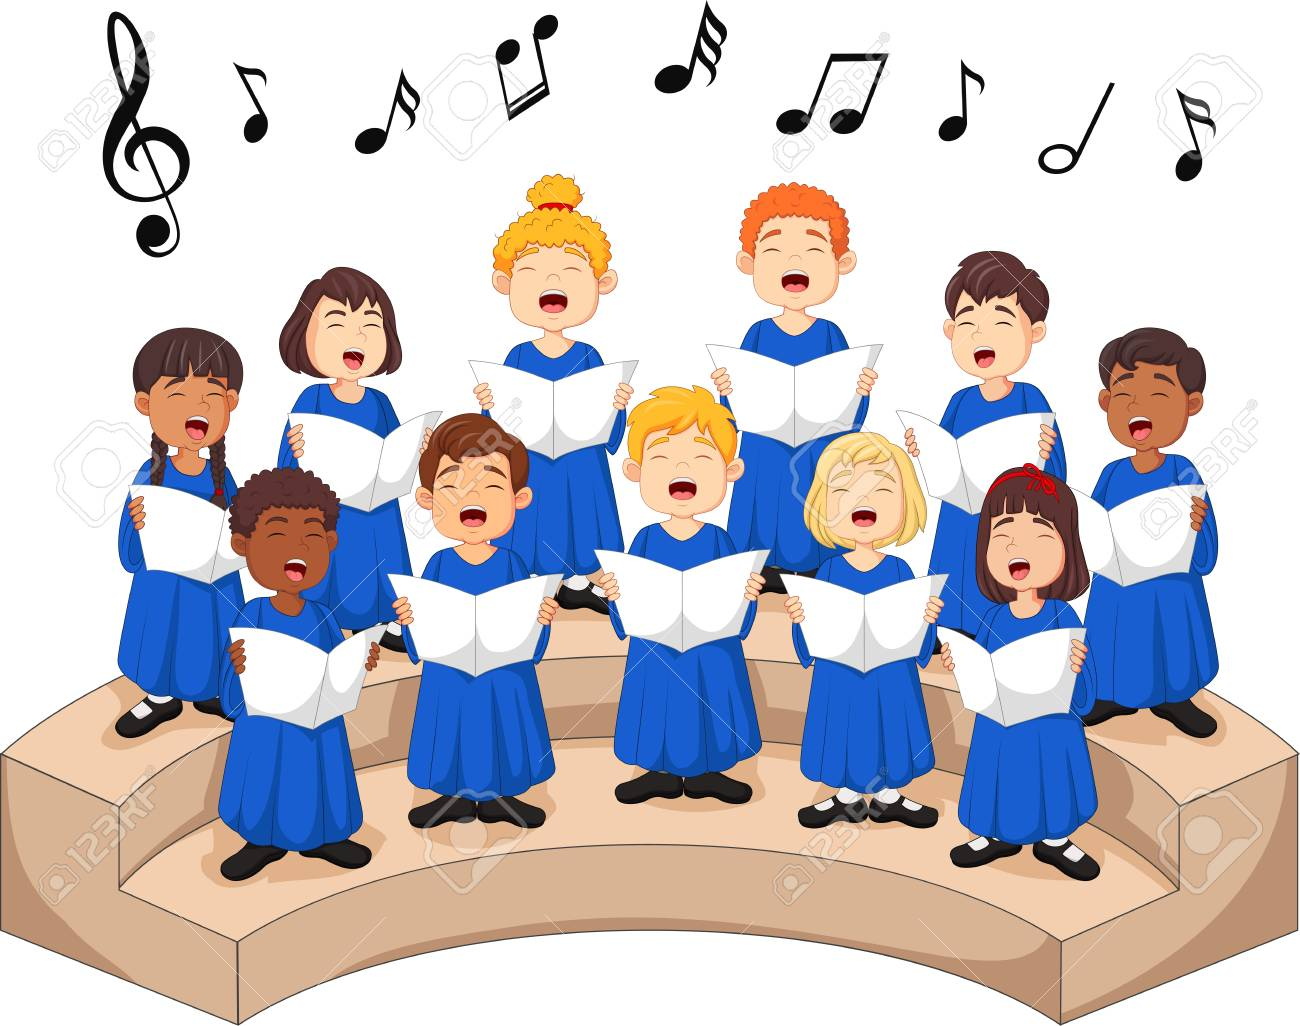 Choir girls and boys singing a song. - 101268454